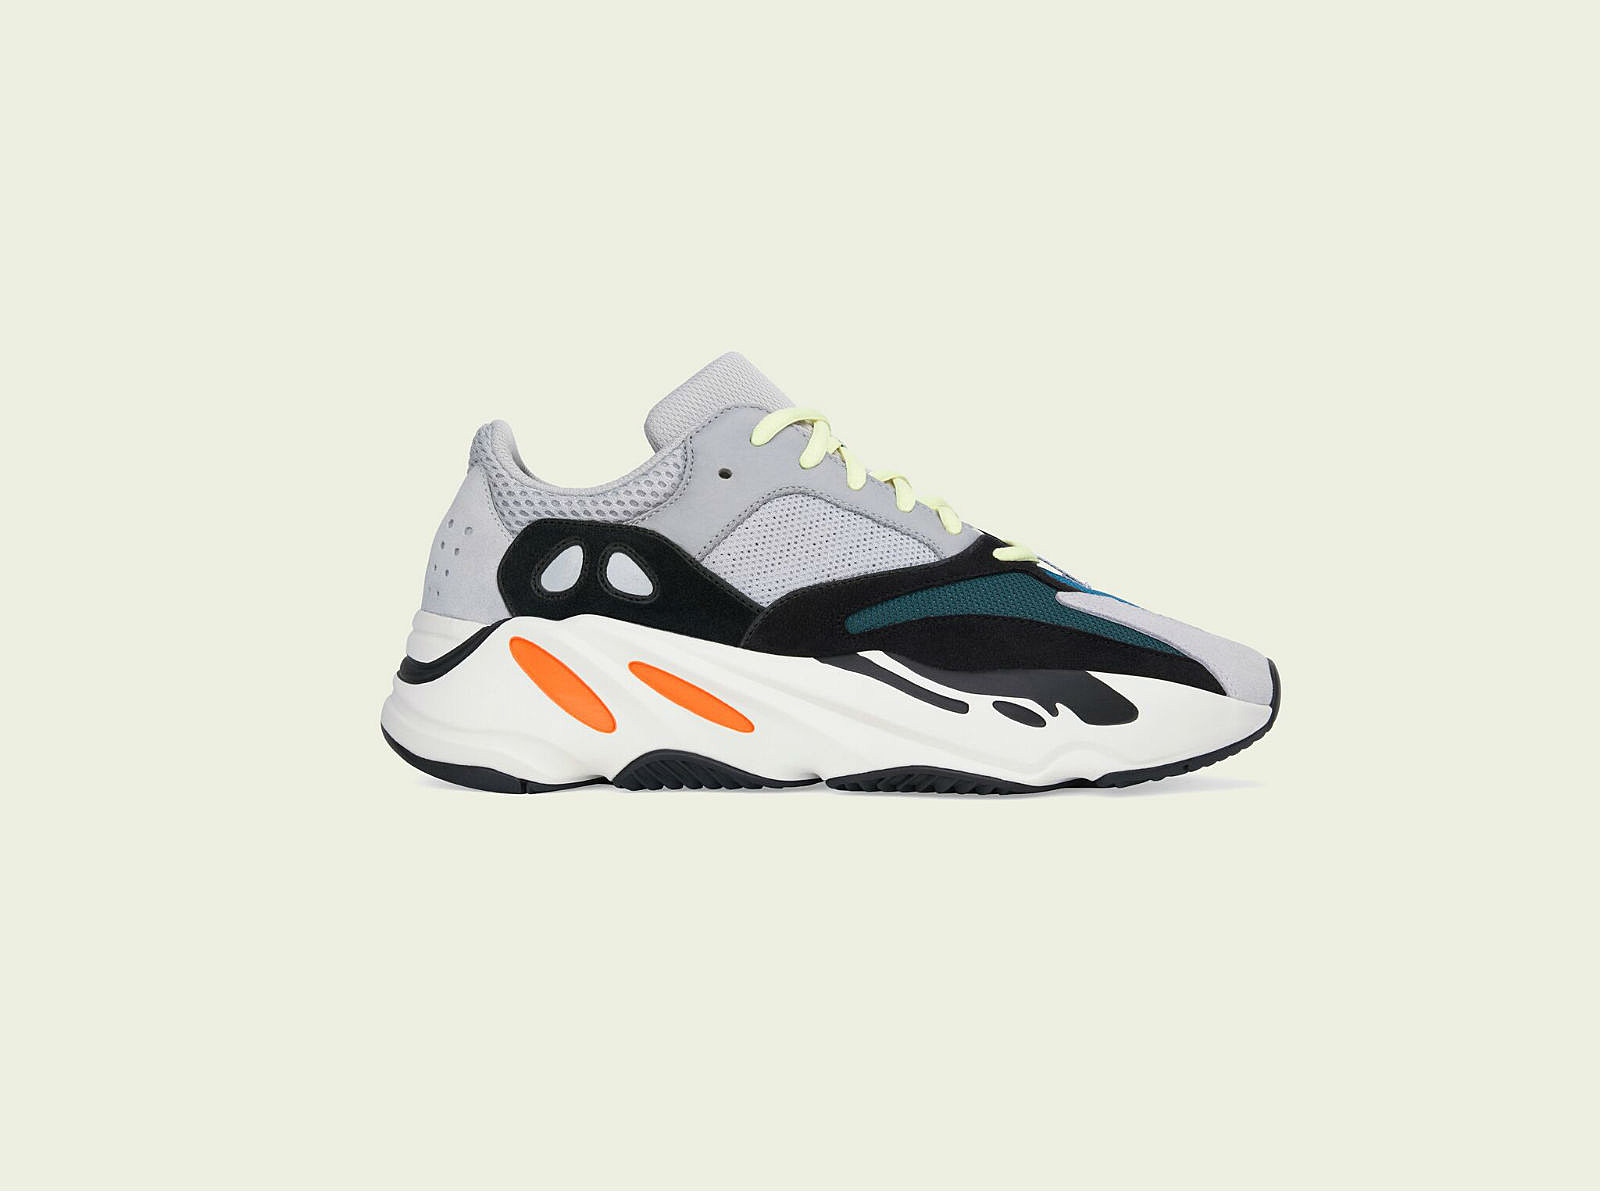 c8fb4abc3 Kanye West and Adidas Announce Re-Release of Yeezy Boost 700 Wave Runner